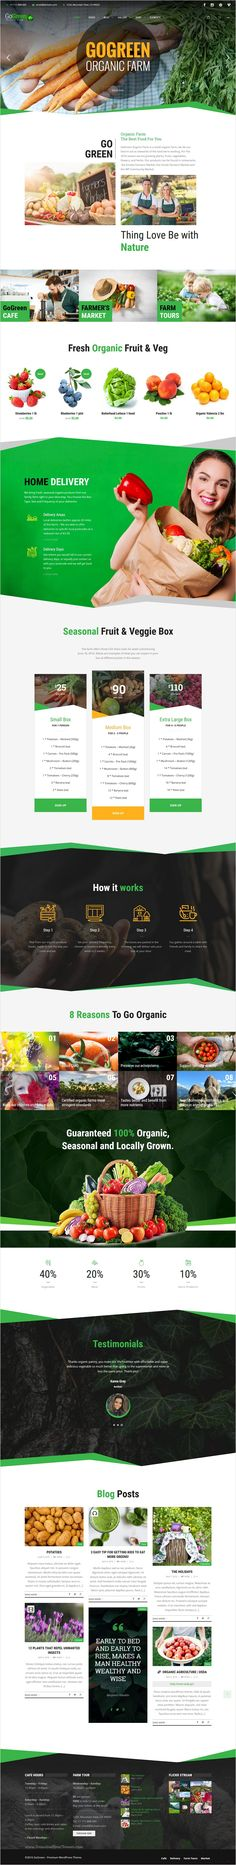 GoGreen is a responsive #WordPress #theme for #organic #farming business, organic #food & cafe as well as any other business websites download now➩ https://themeforest.net/item/gogreen-business-wordpress-theme/16966736?ref=Datasata